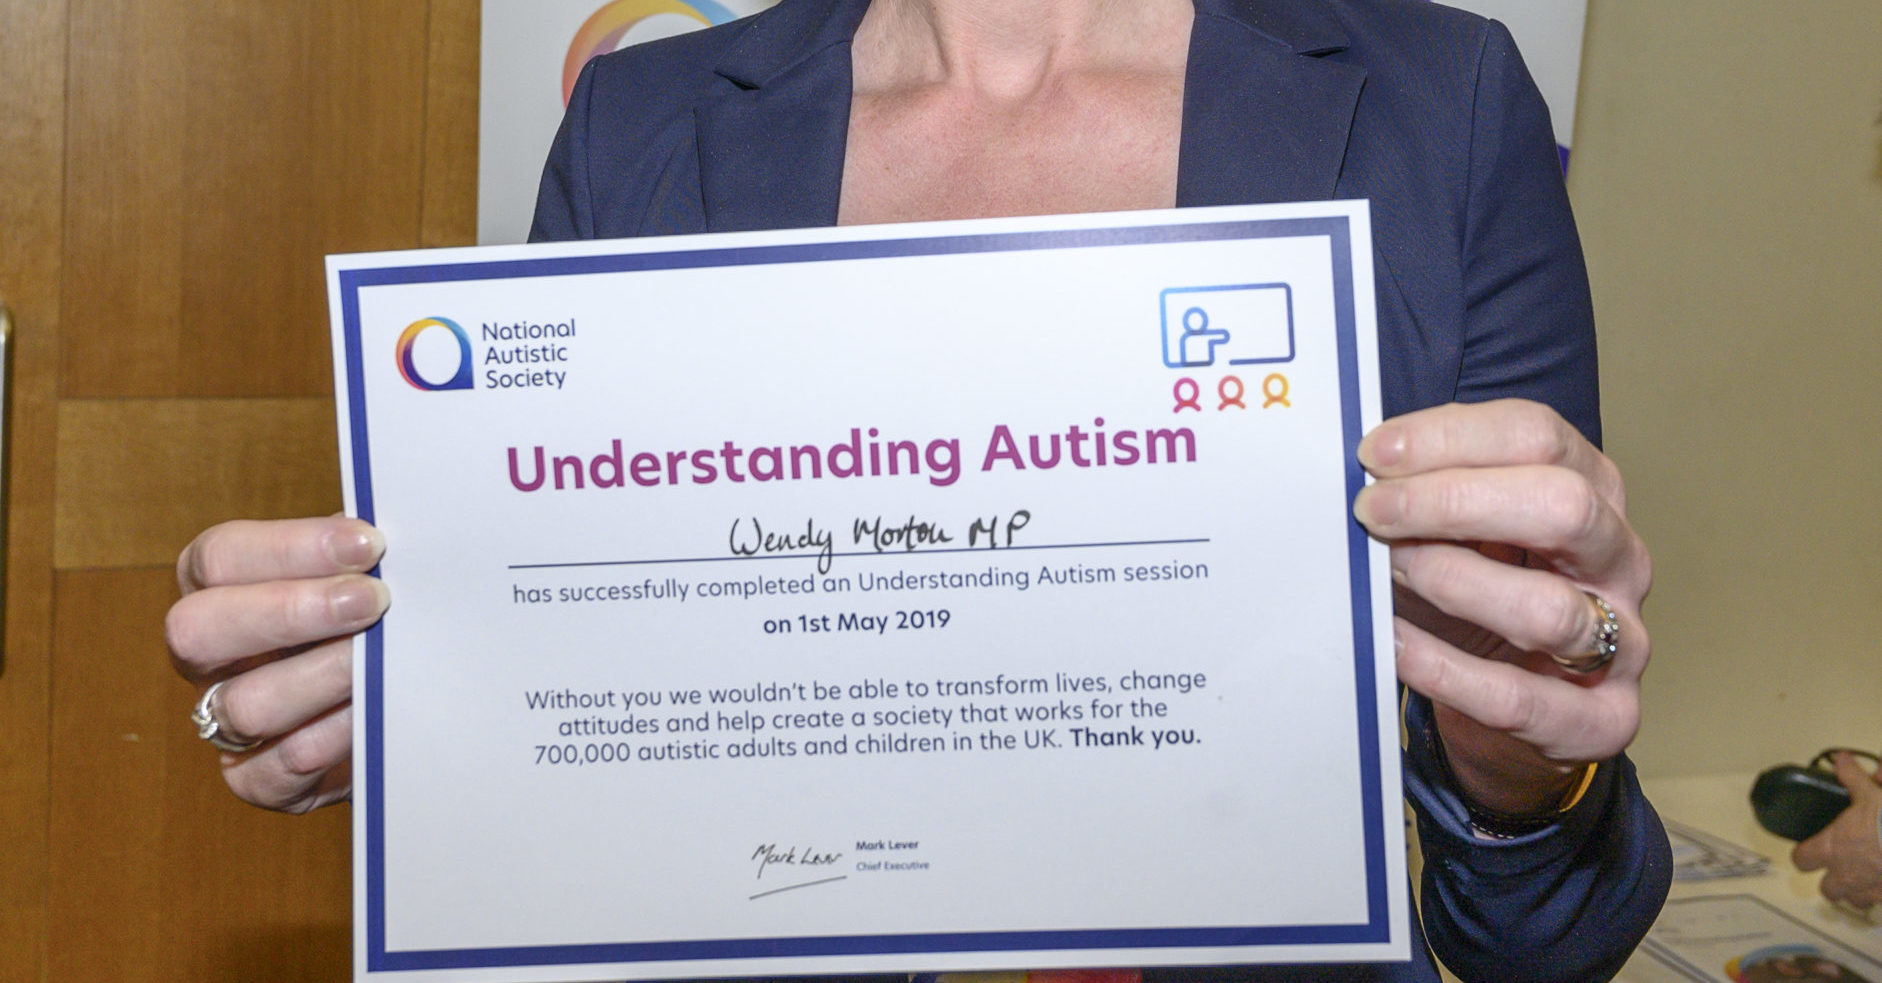 Learning more about Autism